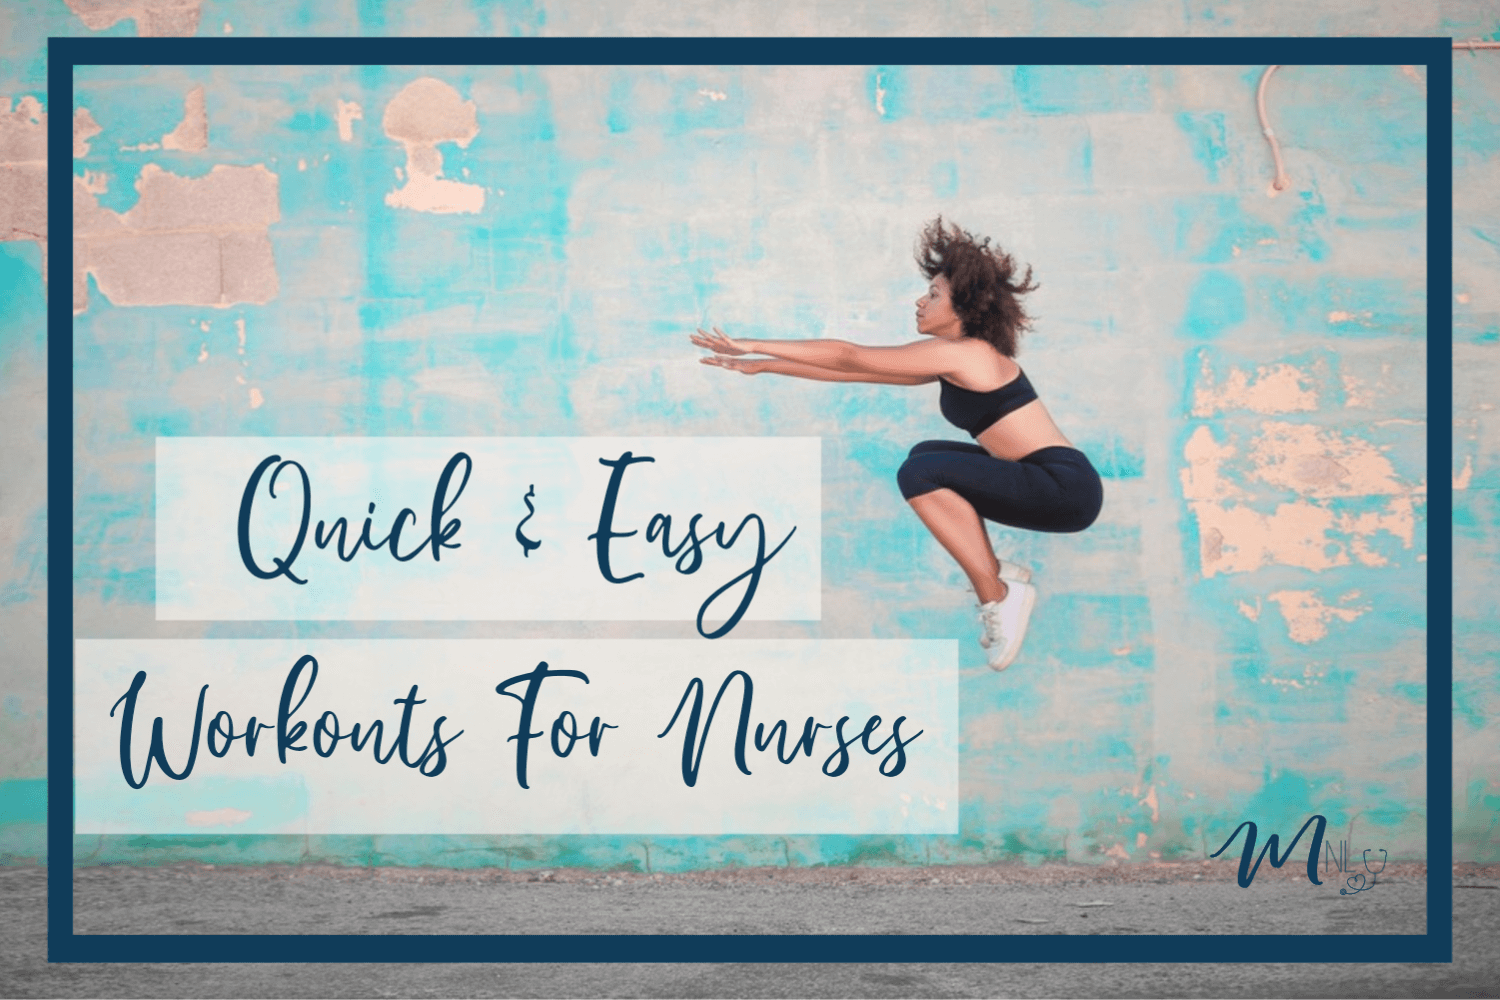 Quick and Easy Workouts For Nurses